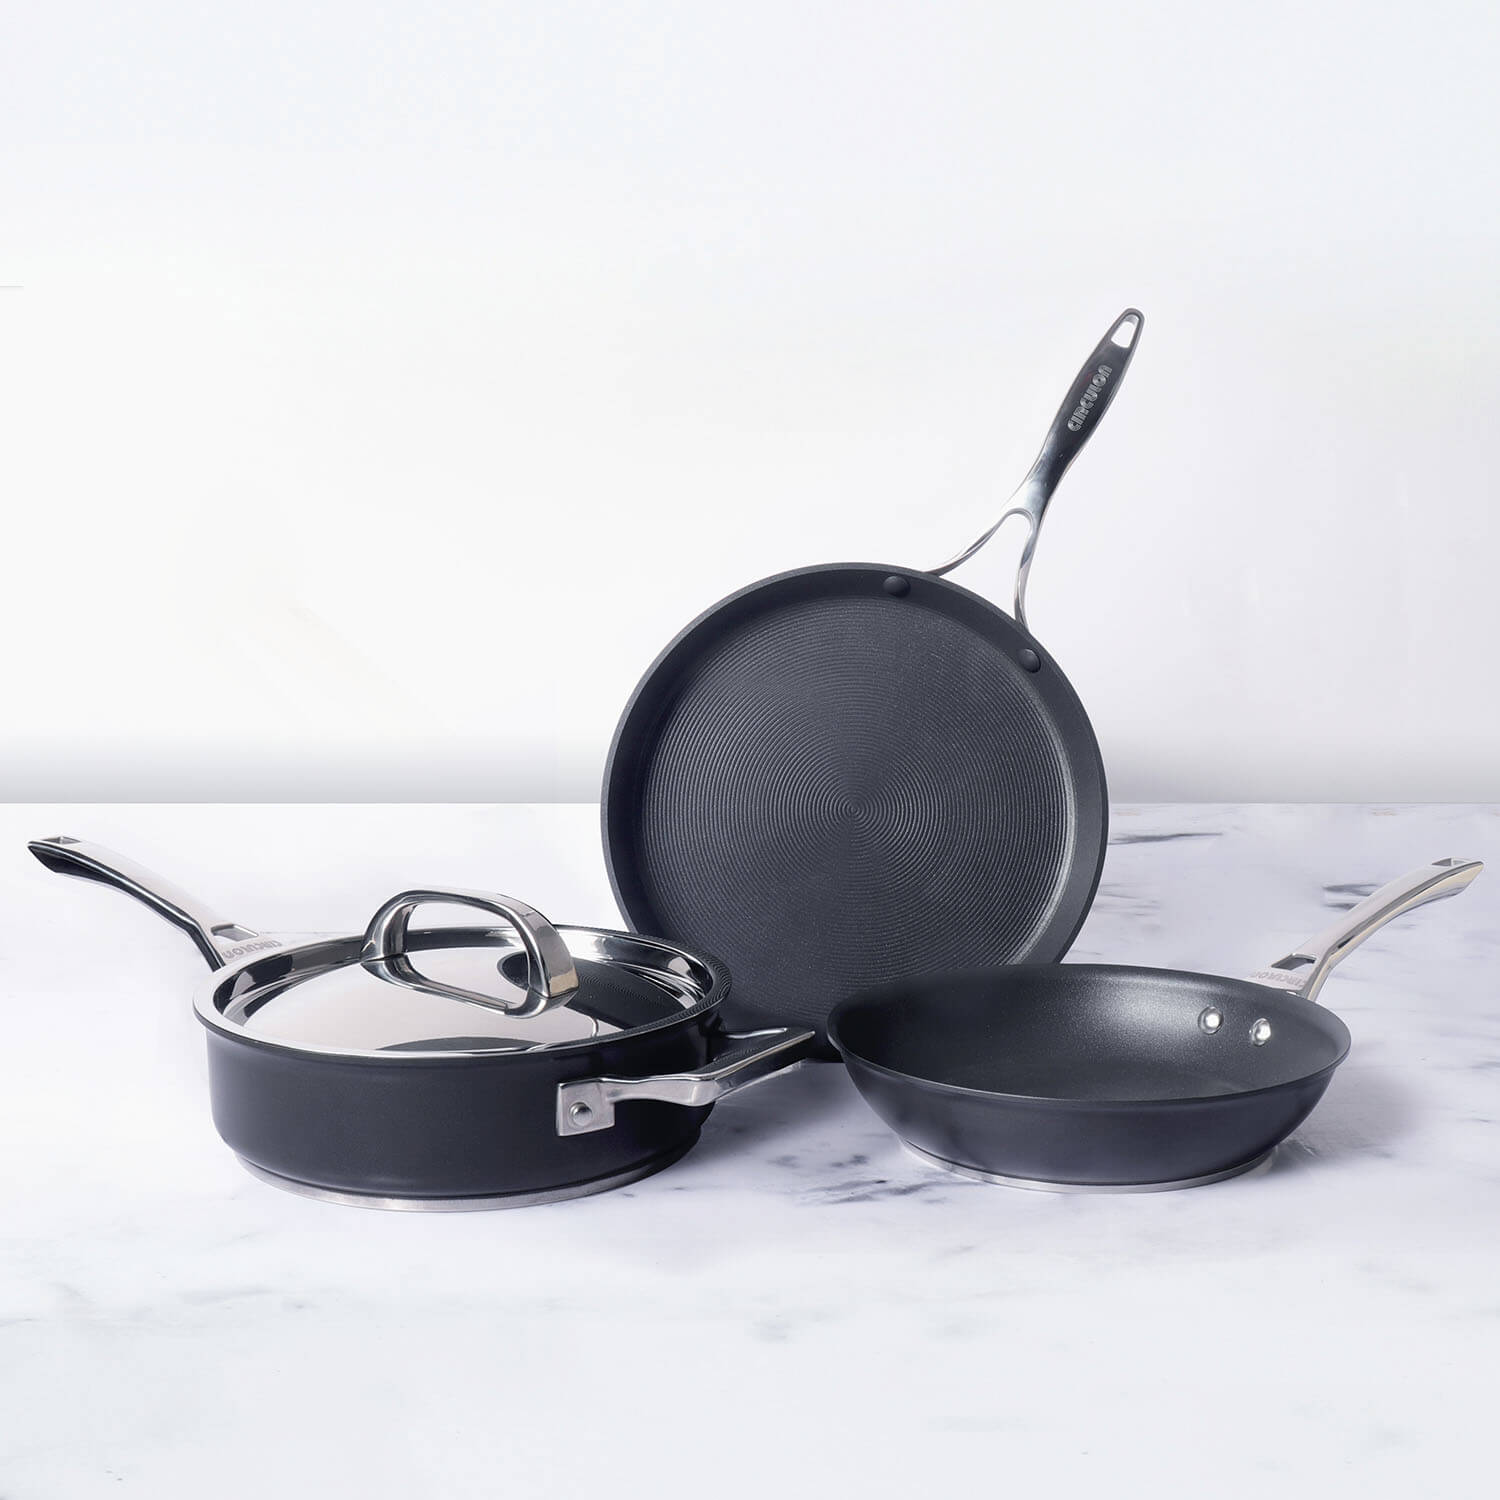 Prism Non-Stick Grillpan 24cm, Copper - Pots and Pans